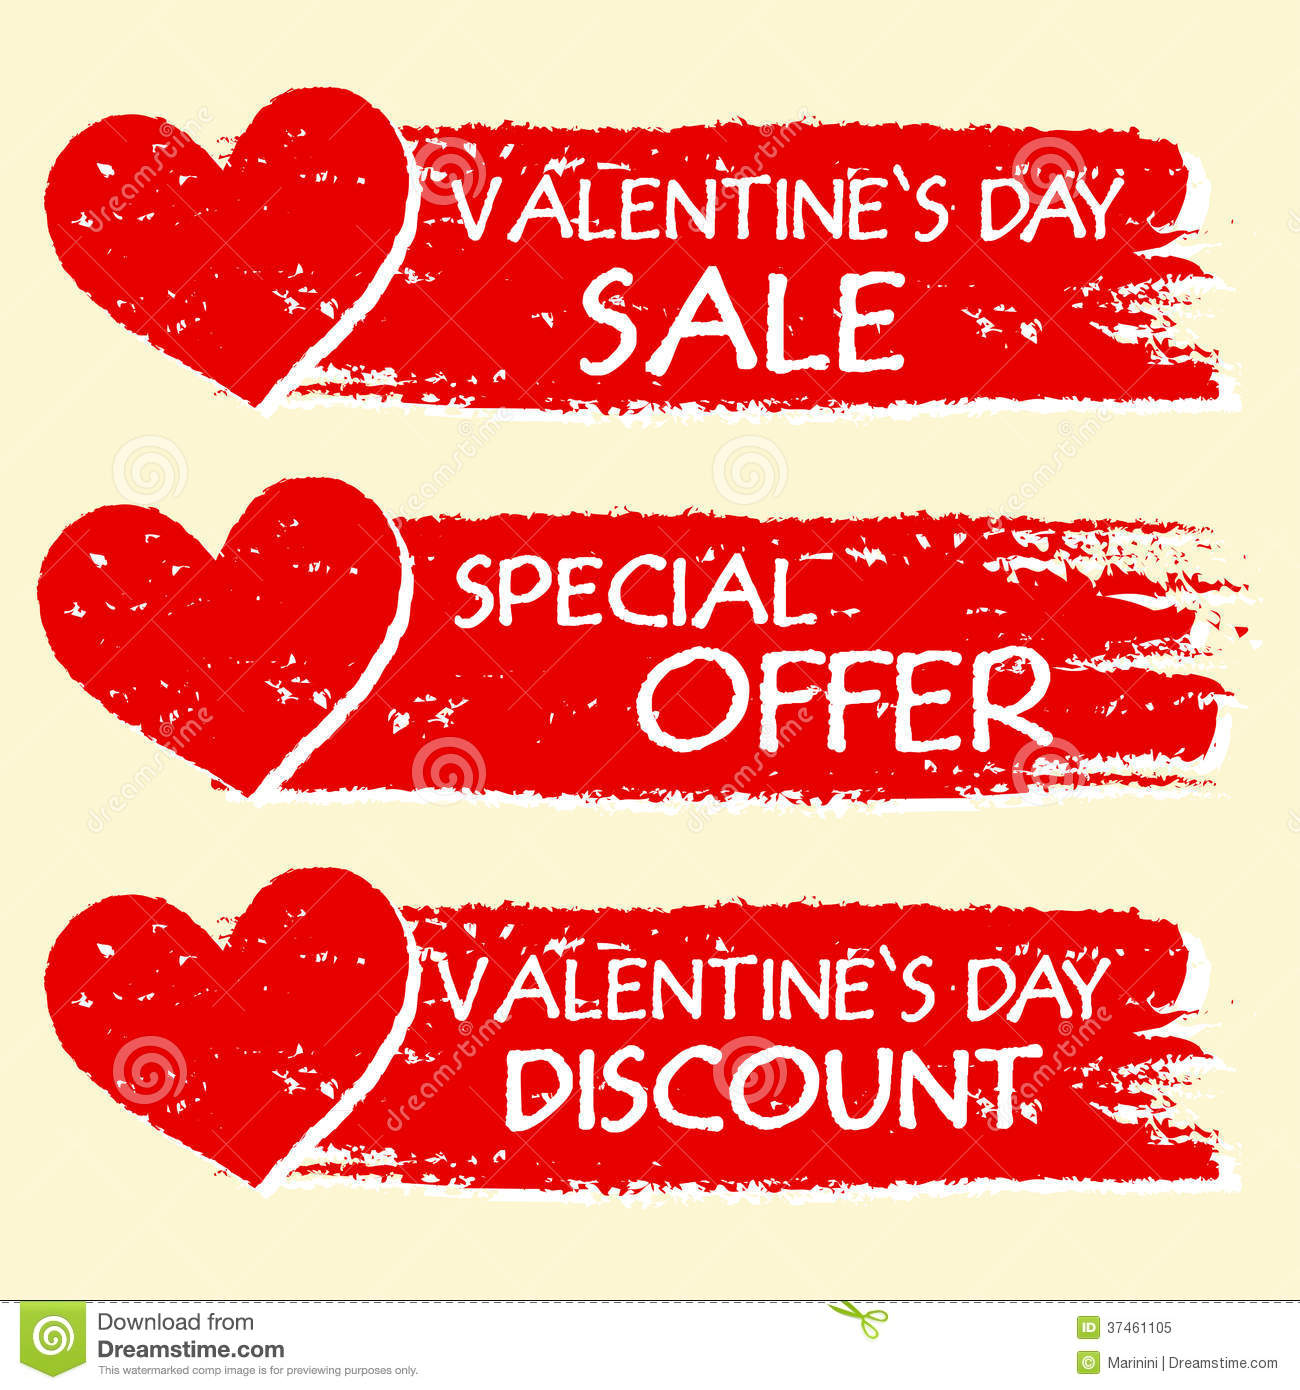 Großartig Valentines Day Sale And Discount, Special Offer With Hearts In R  Illustration 37461105   Megapixl